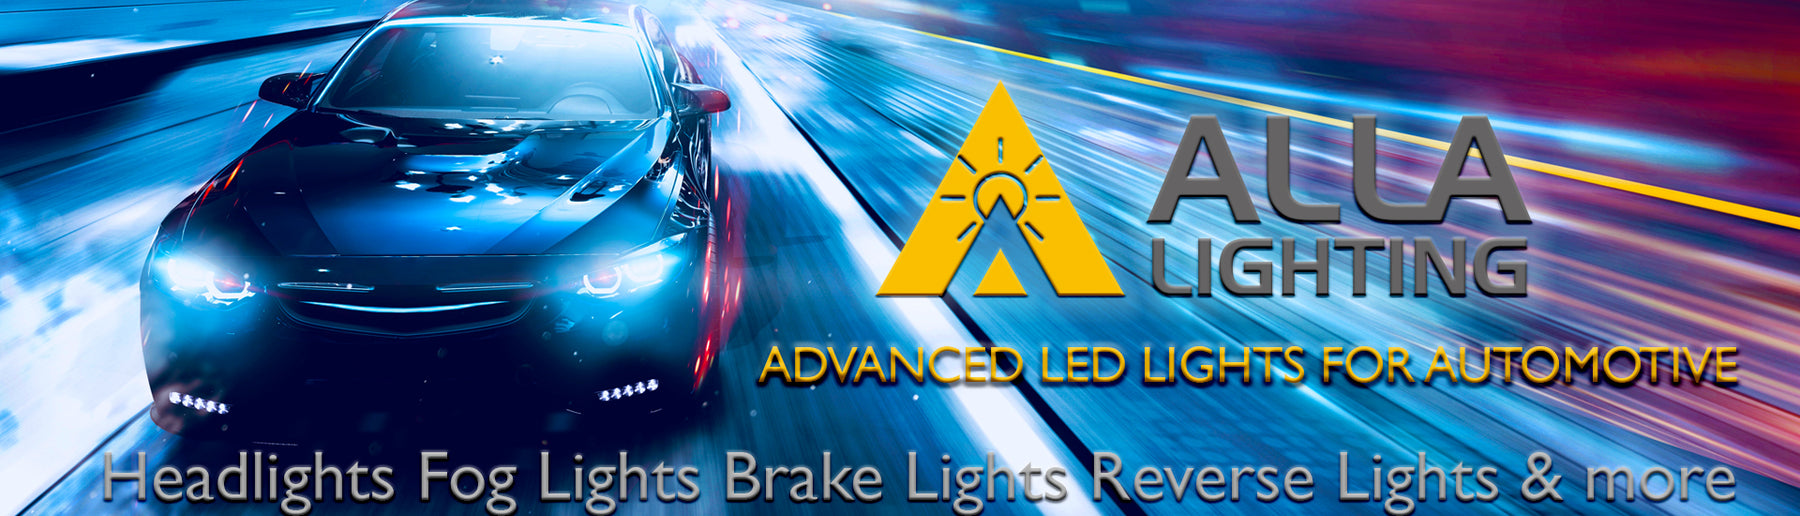 LED License Plate Light Upgrade  for Cars Trucks SUVs at ALLALighting.com